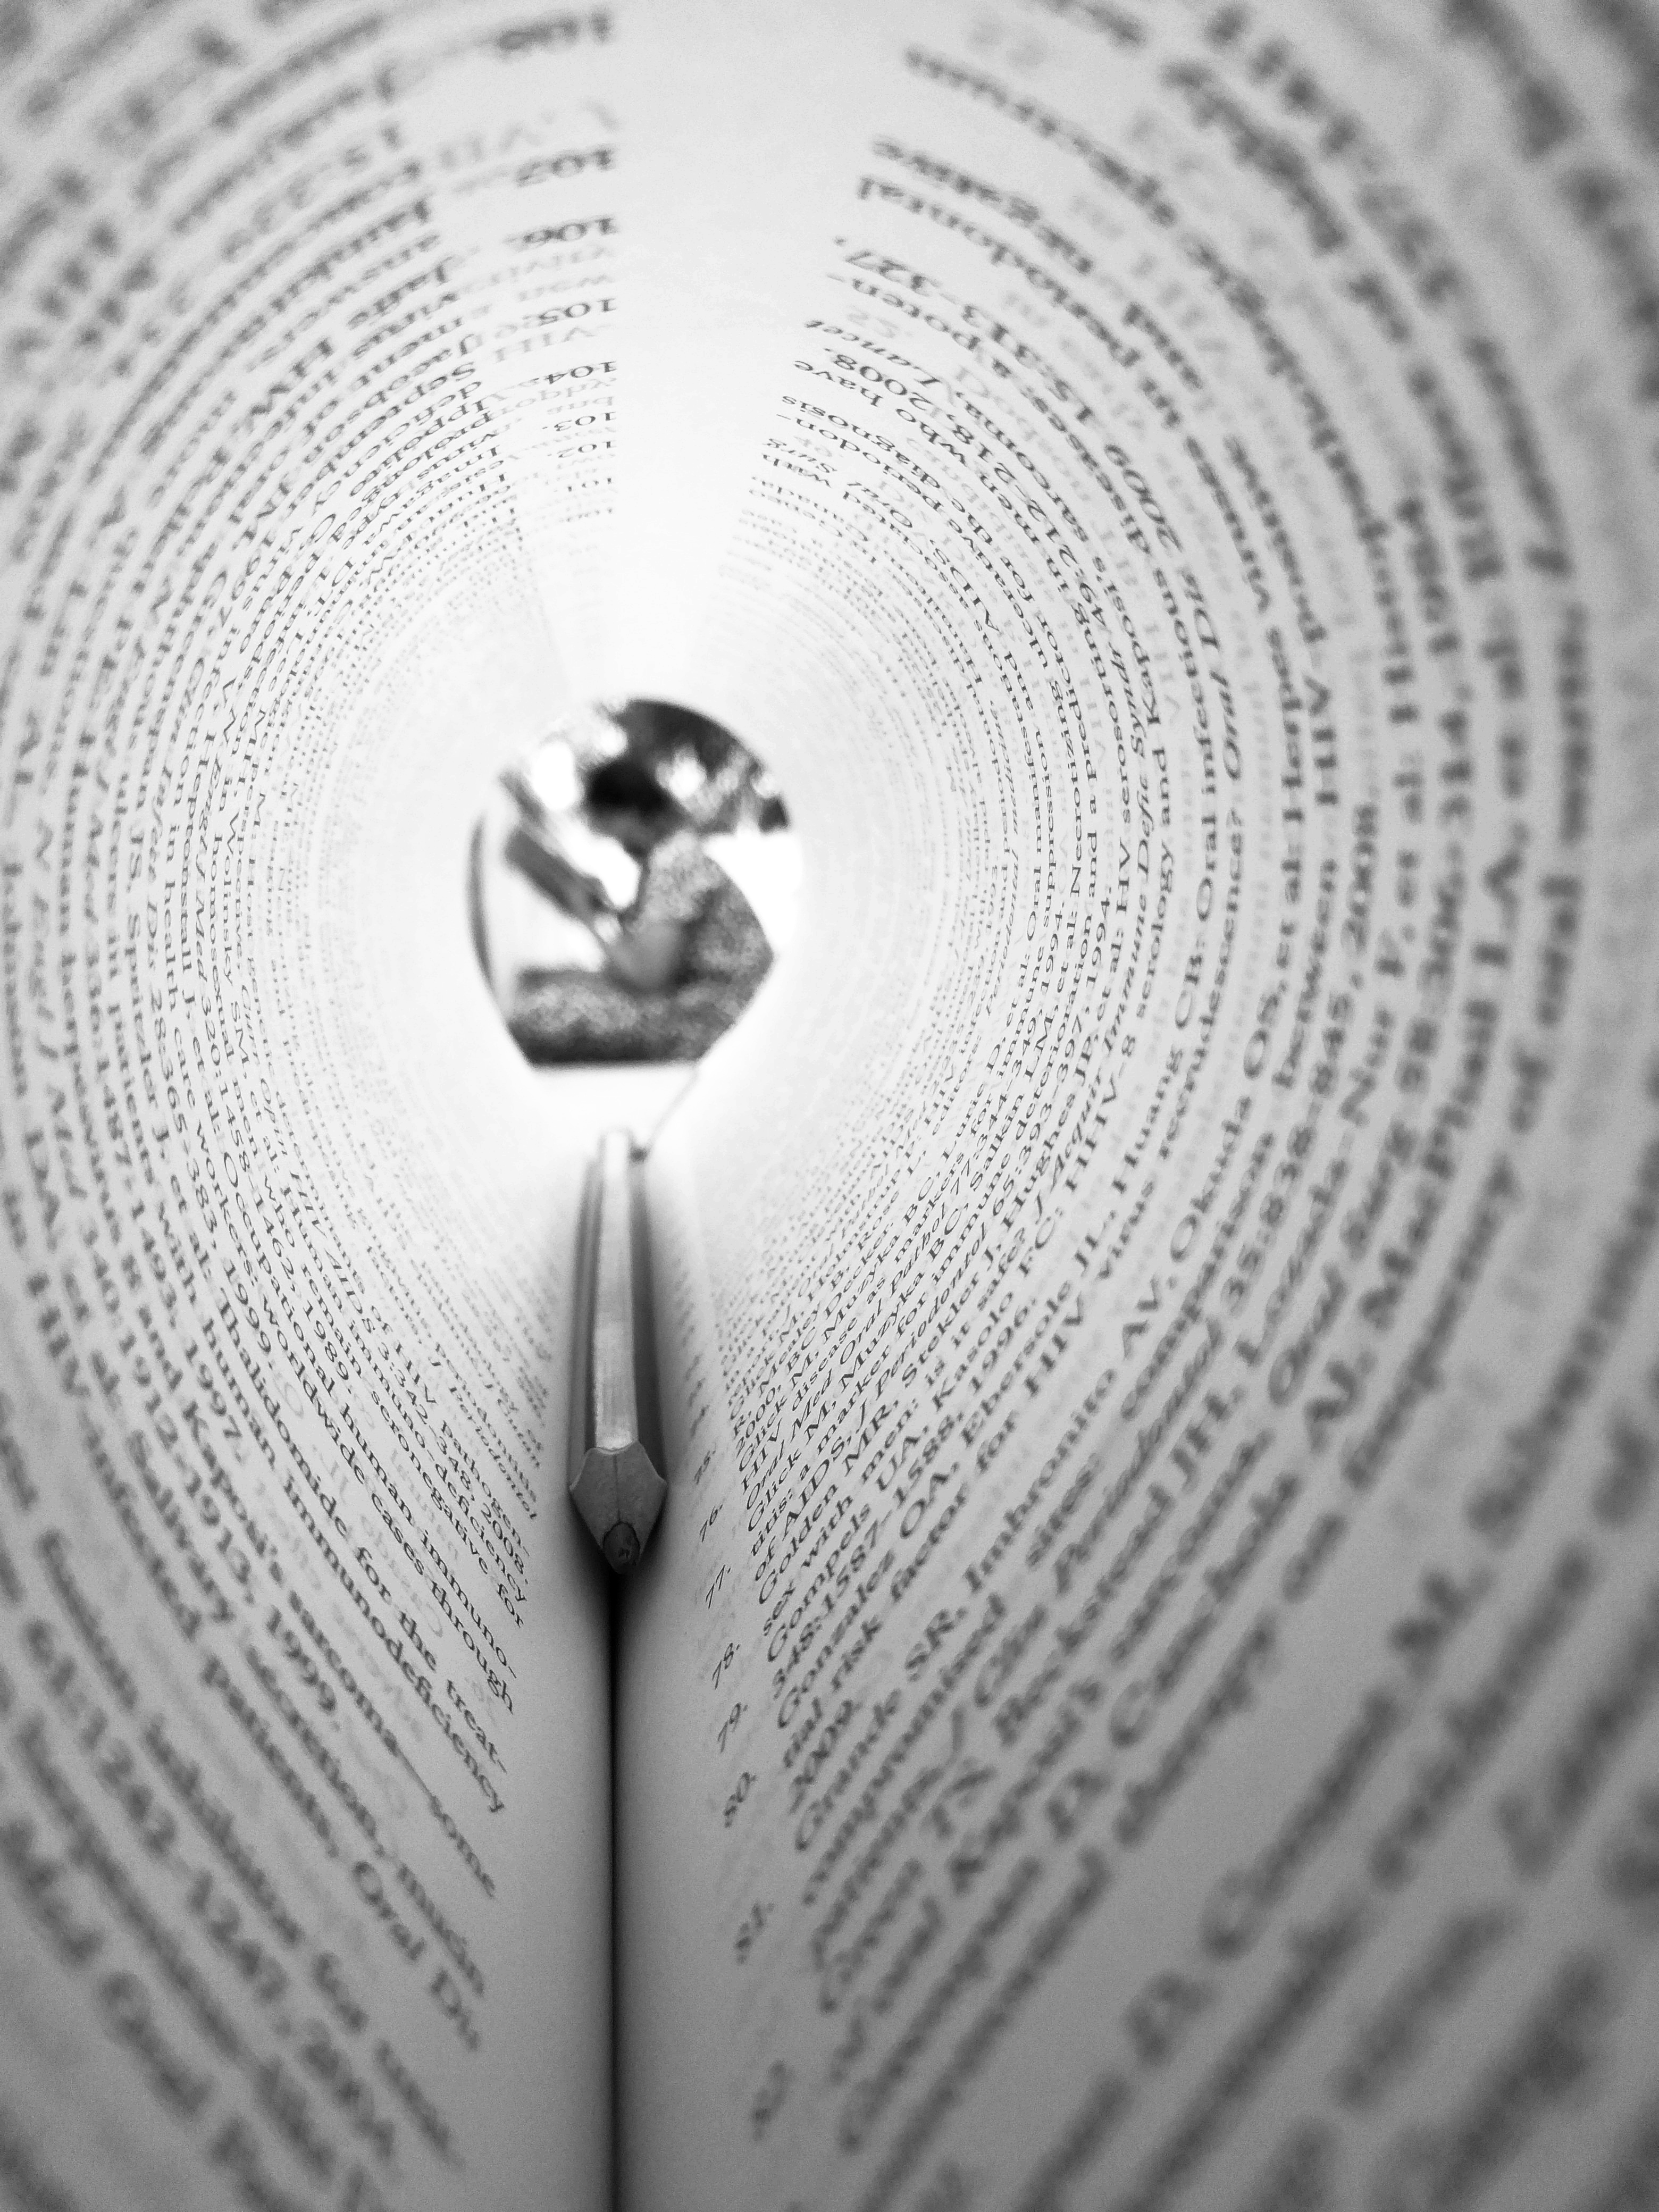 into the world of knowledge